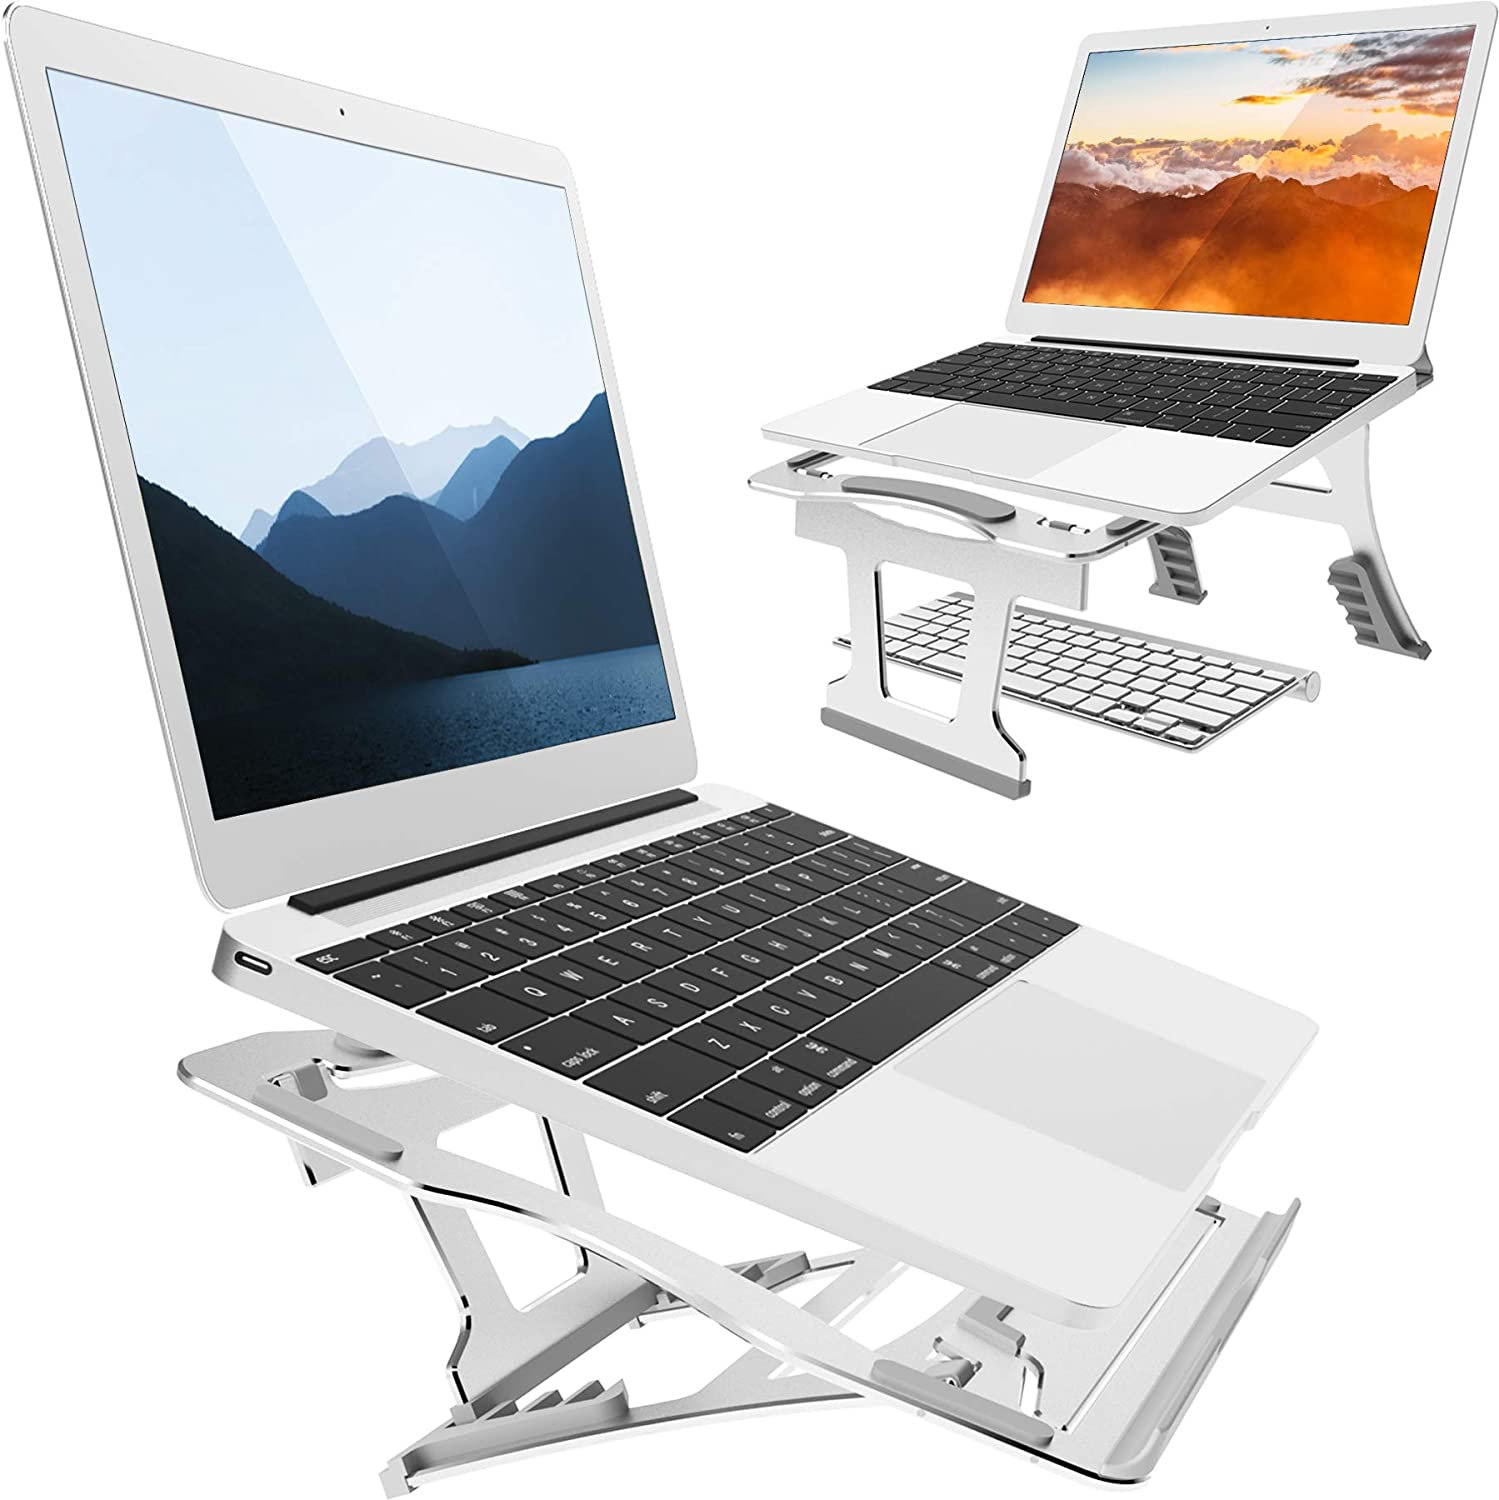 2 in 1 Laptop Stand for Desk, 3 Folding Modes, 9 Angles Adjustable. Portable Ergonomic Aluminum Laptop Stand. Free from Install. for Laptop 10''~15.6'', Suitable for Long Time of Laptop Using(Silver)